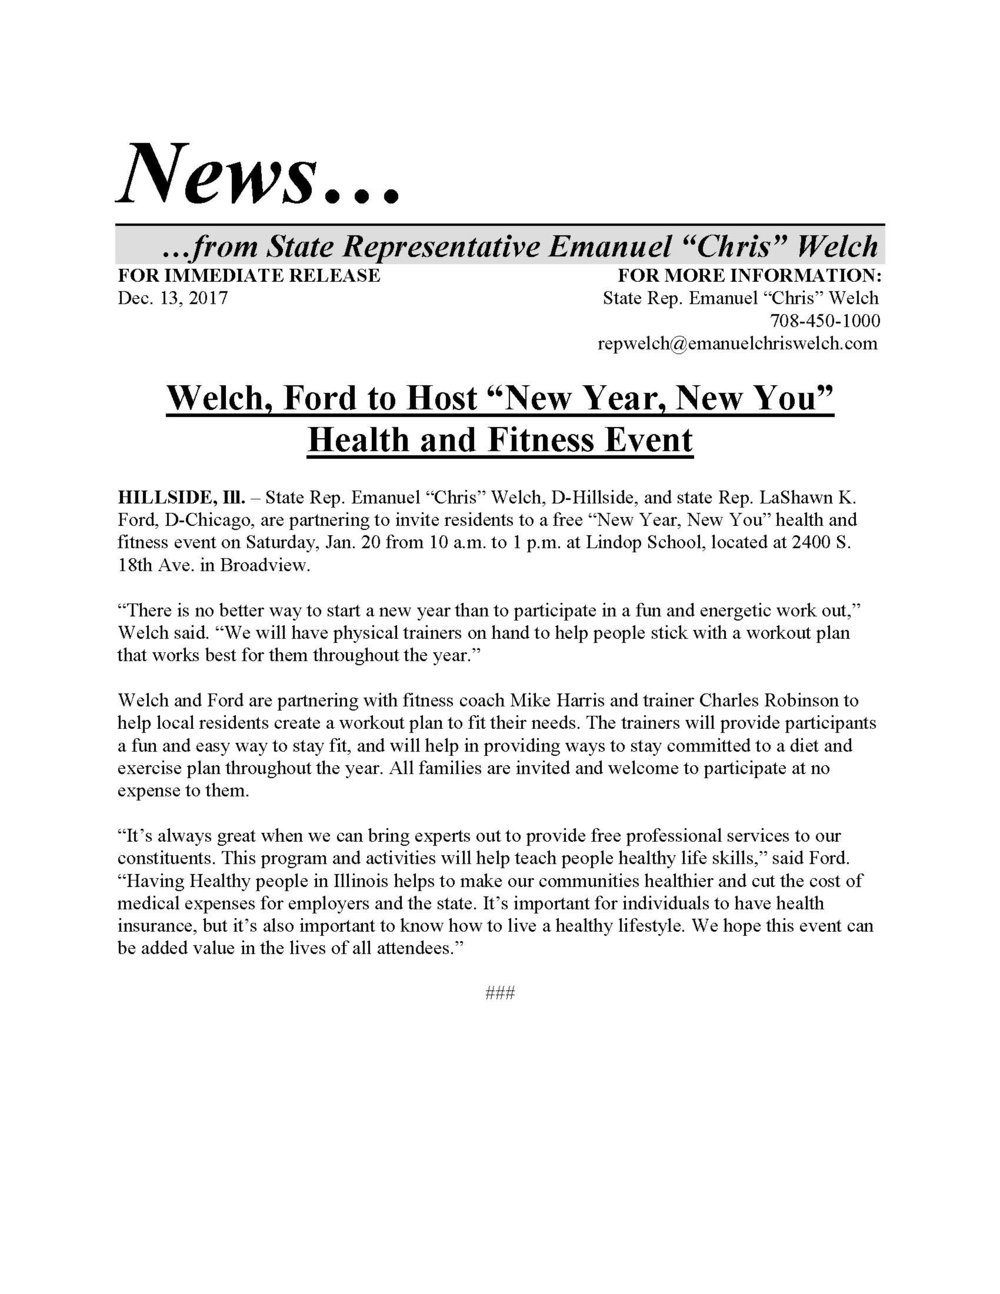 "Welch, Ford to Host ""New Year, New You"" Health and Fitness Event  (December 13, 2017)"